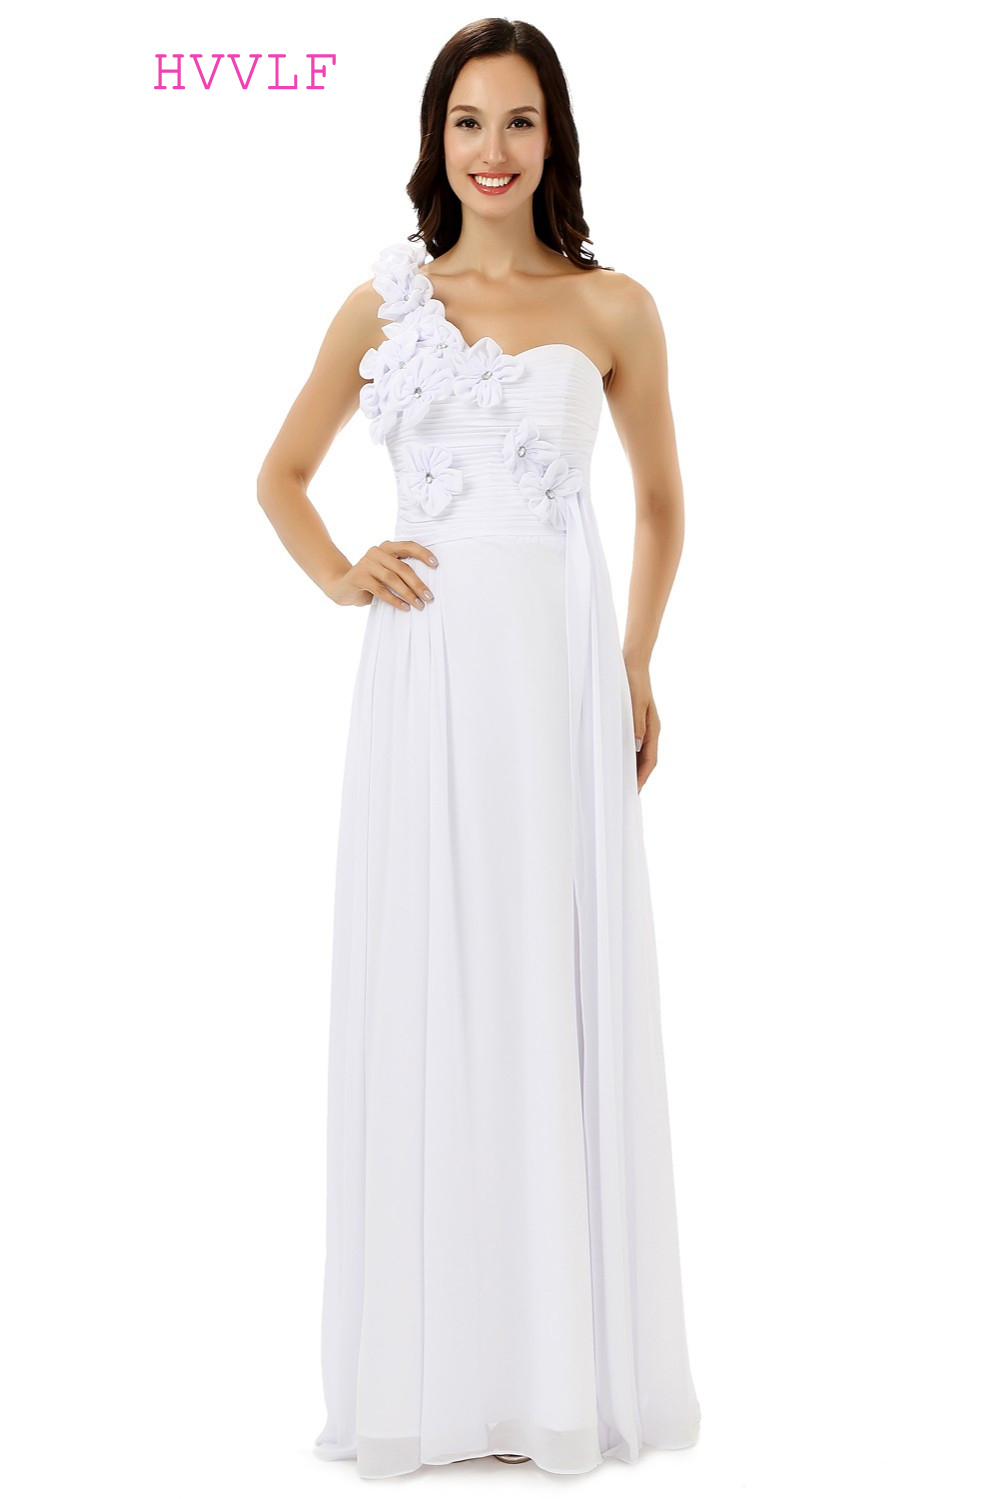 White 2018 Cheap Bridesmaid Dresses Under 50 A-line One-shoulder Floor Length Chiffon Fl ...